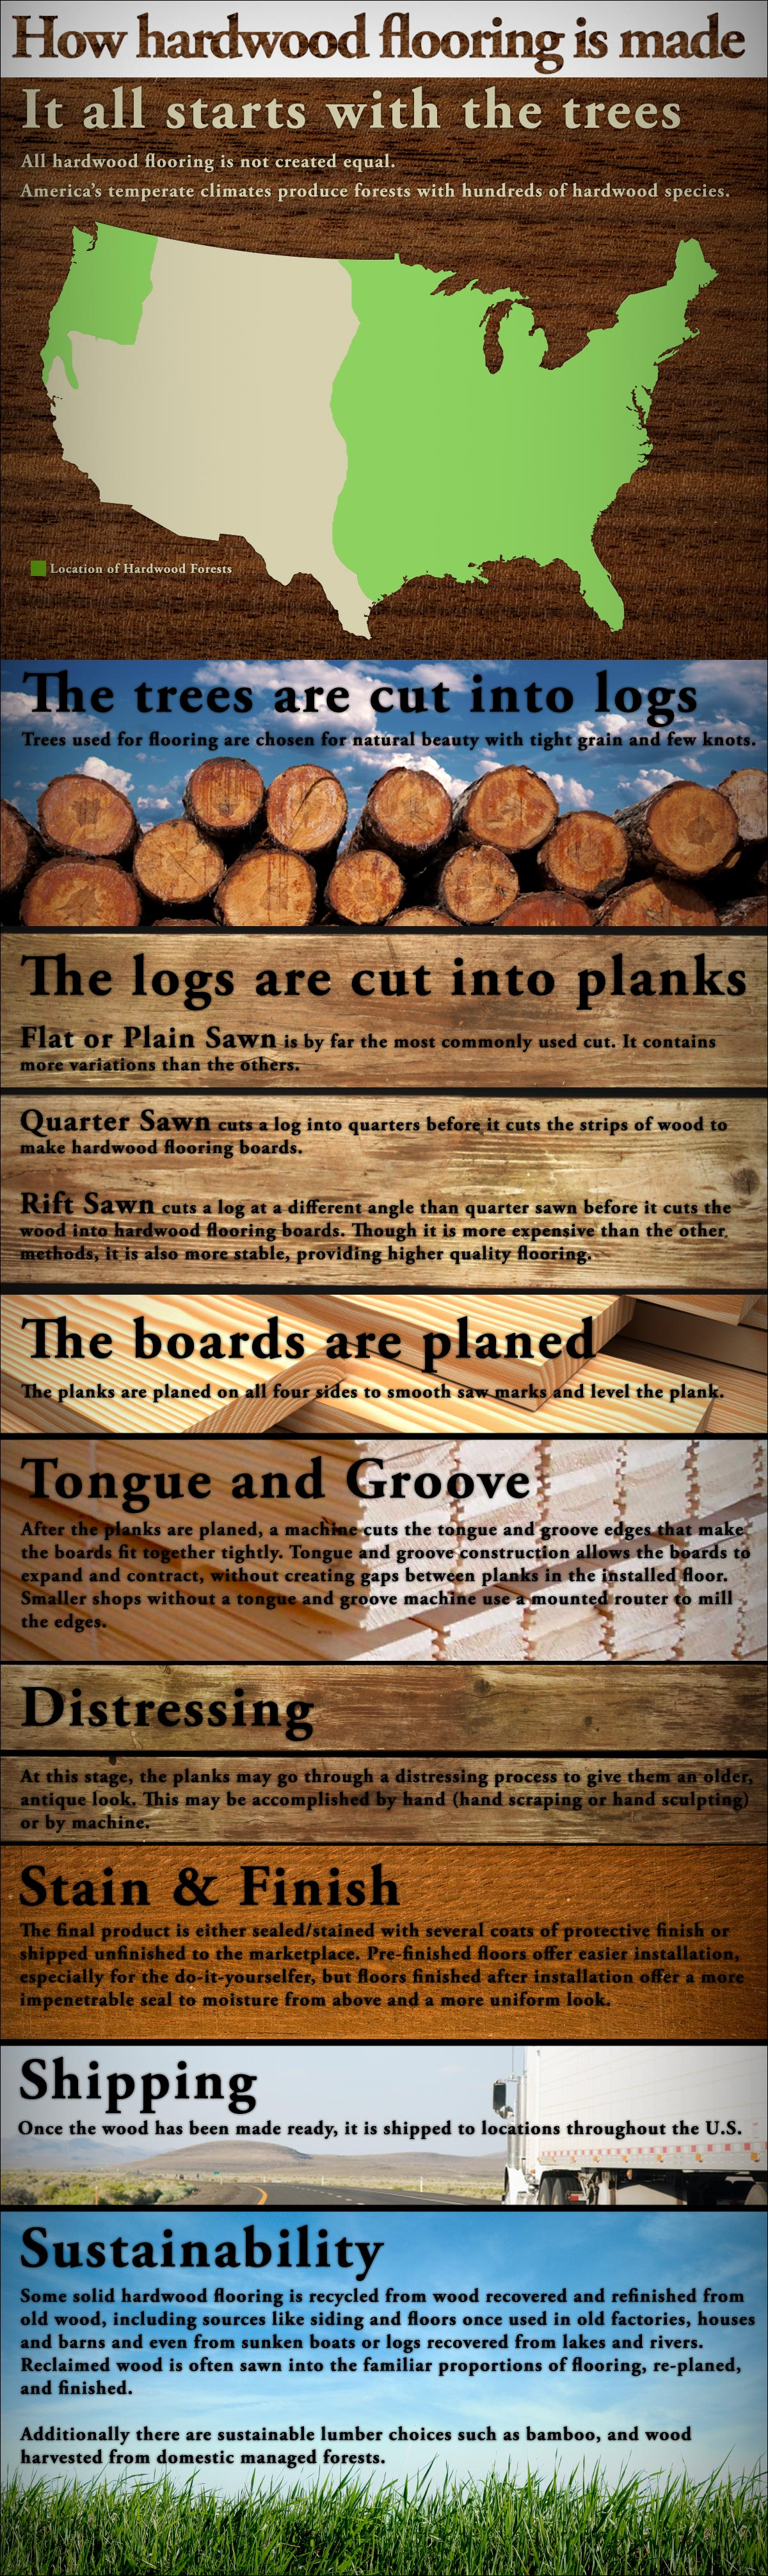 How Hardwood Flooring is Made Infographic